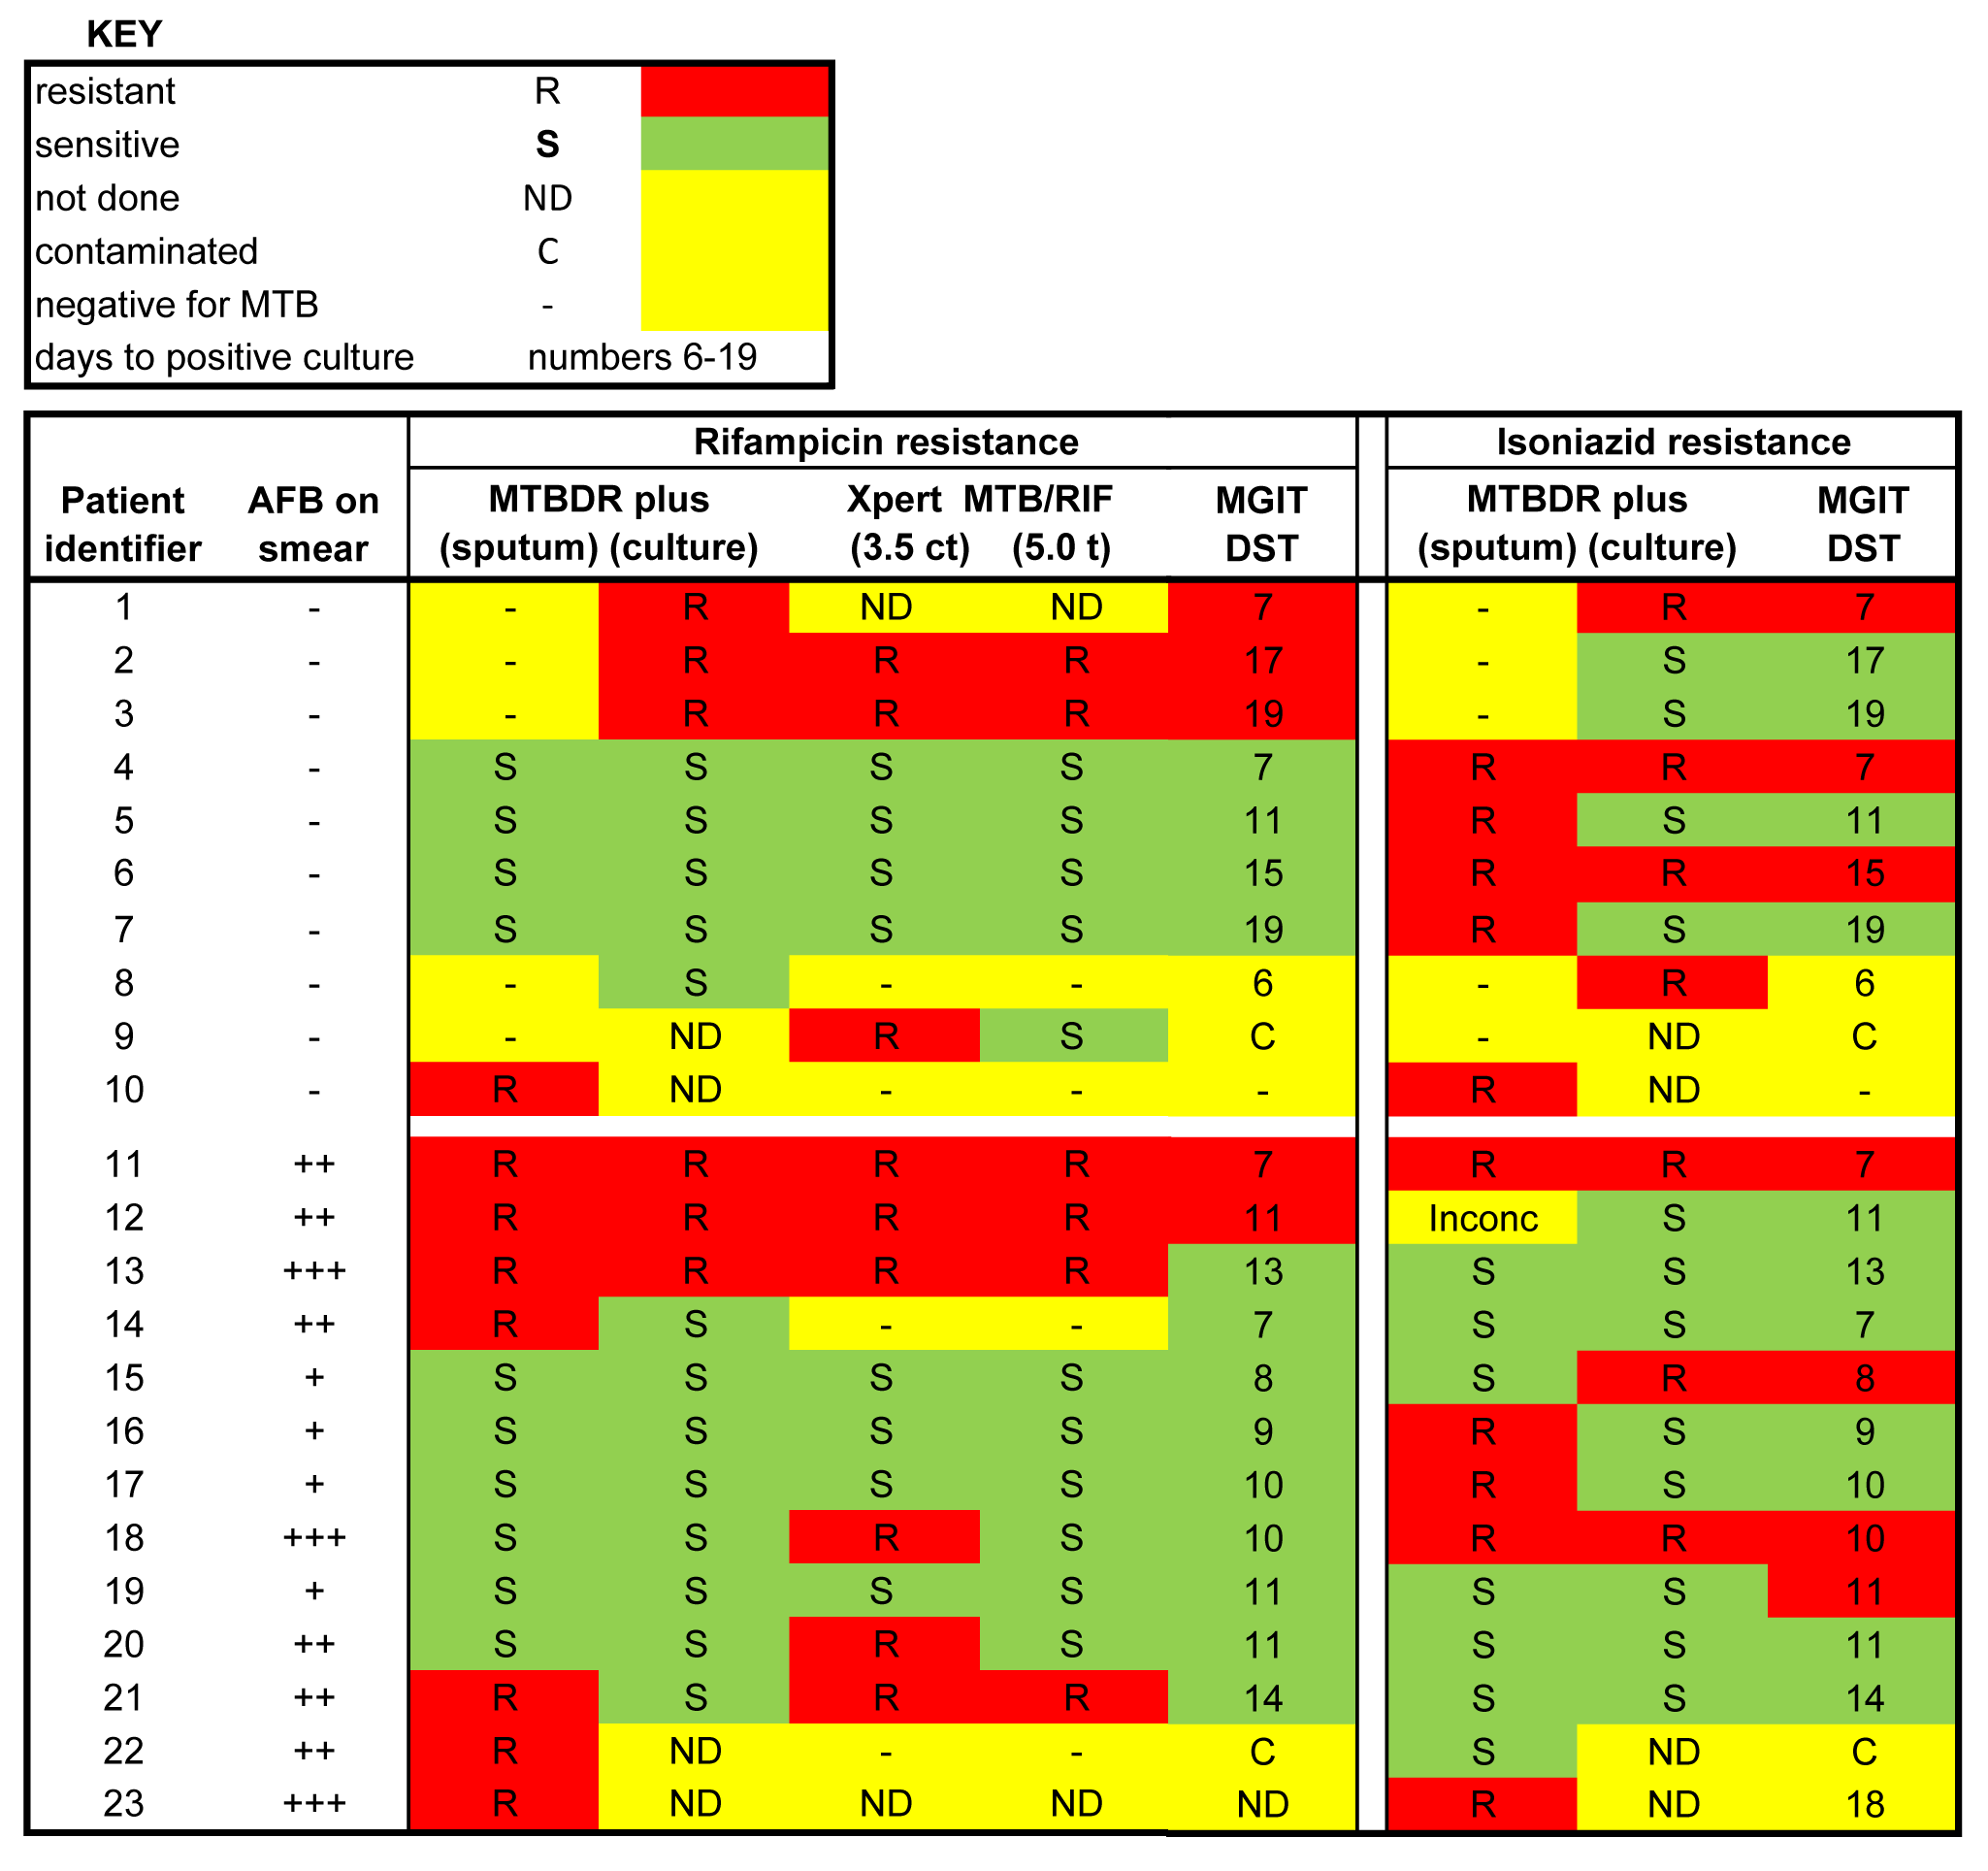 Heat map showing drug susceptibility profiles from 23 samples based on Xpert MTB/RIF, MTBDRplus on sputum, MTBDRplus on cultured isolates, and phenotypic culture (MGIT DST).